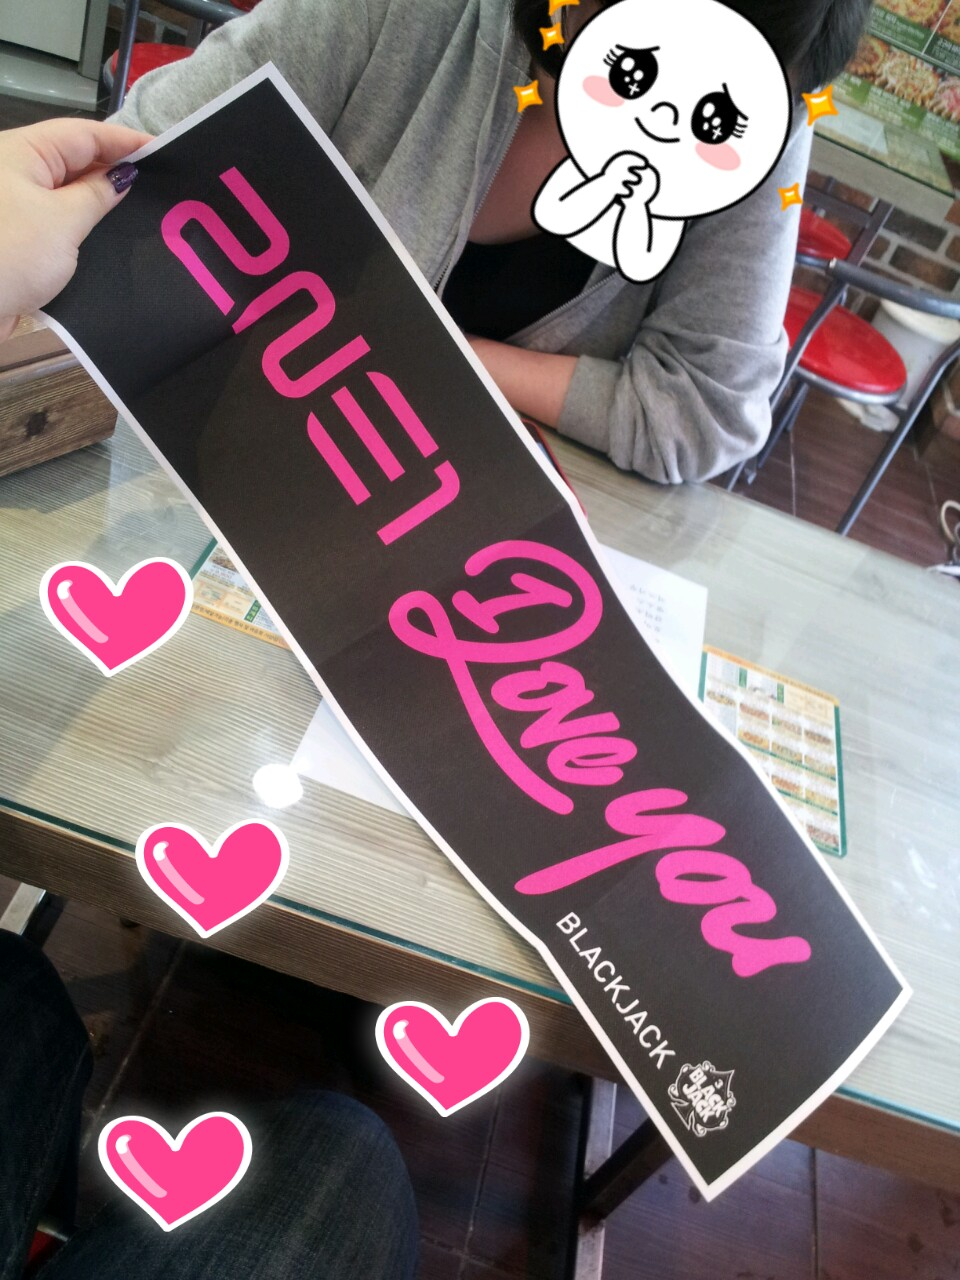 Wow I want one like this.. 2ne1 official slogan ^^ '@halohalokitty: http://t.co/z0Ry5ZgL'